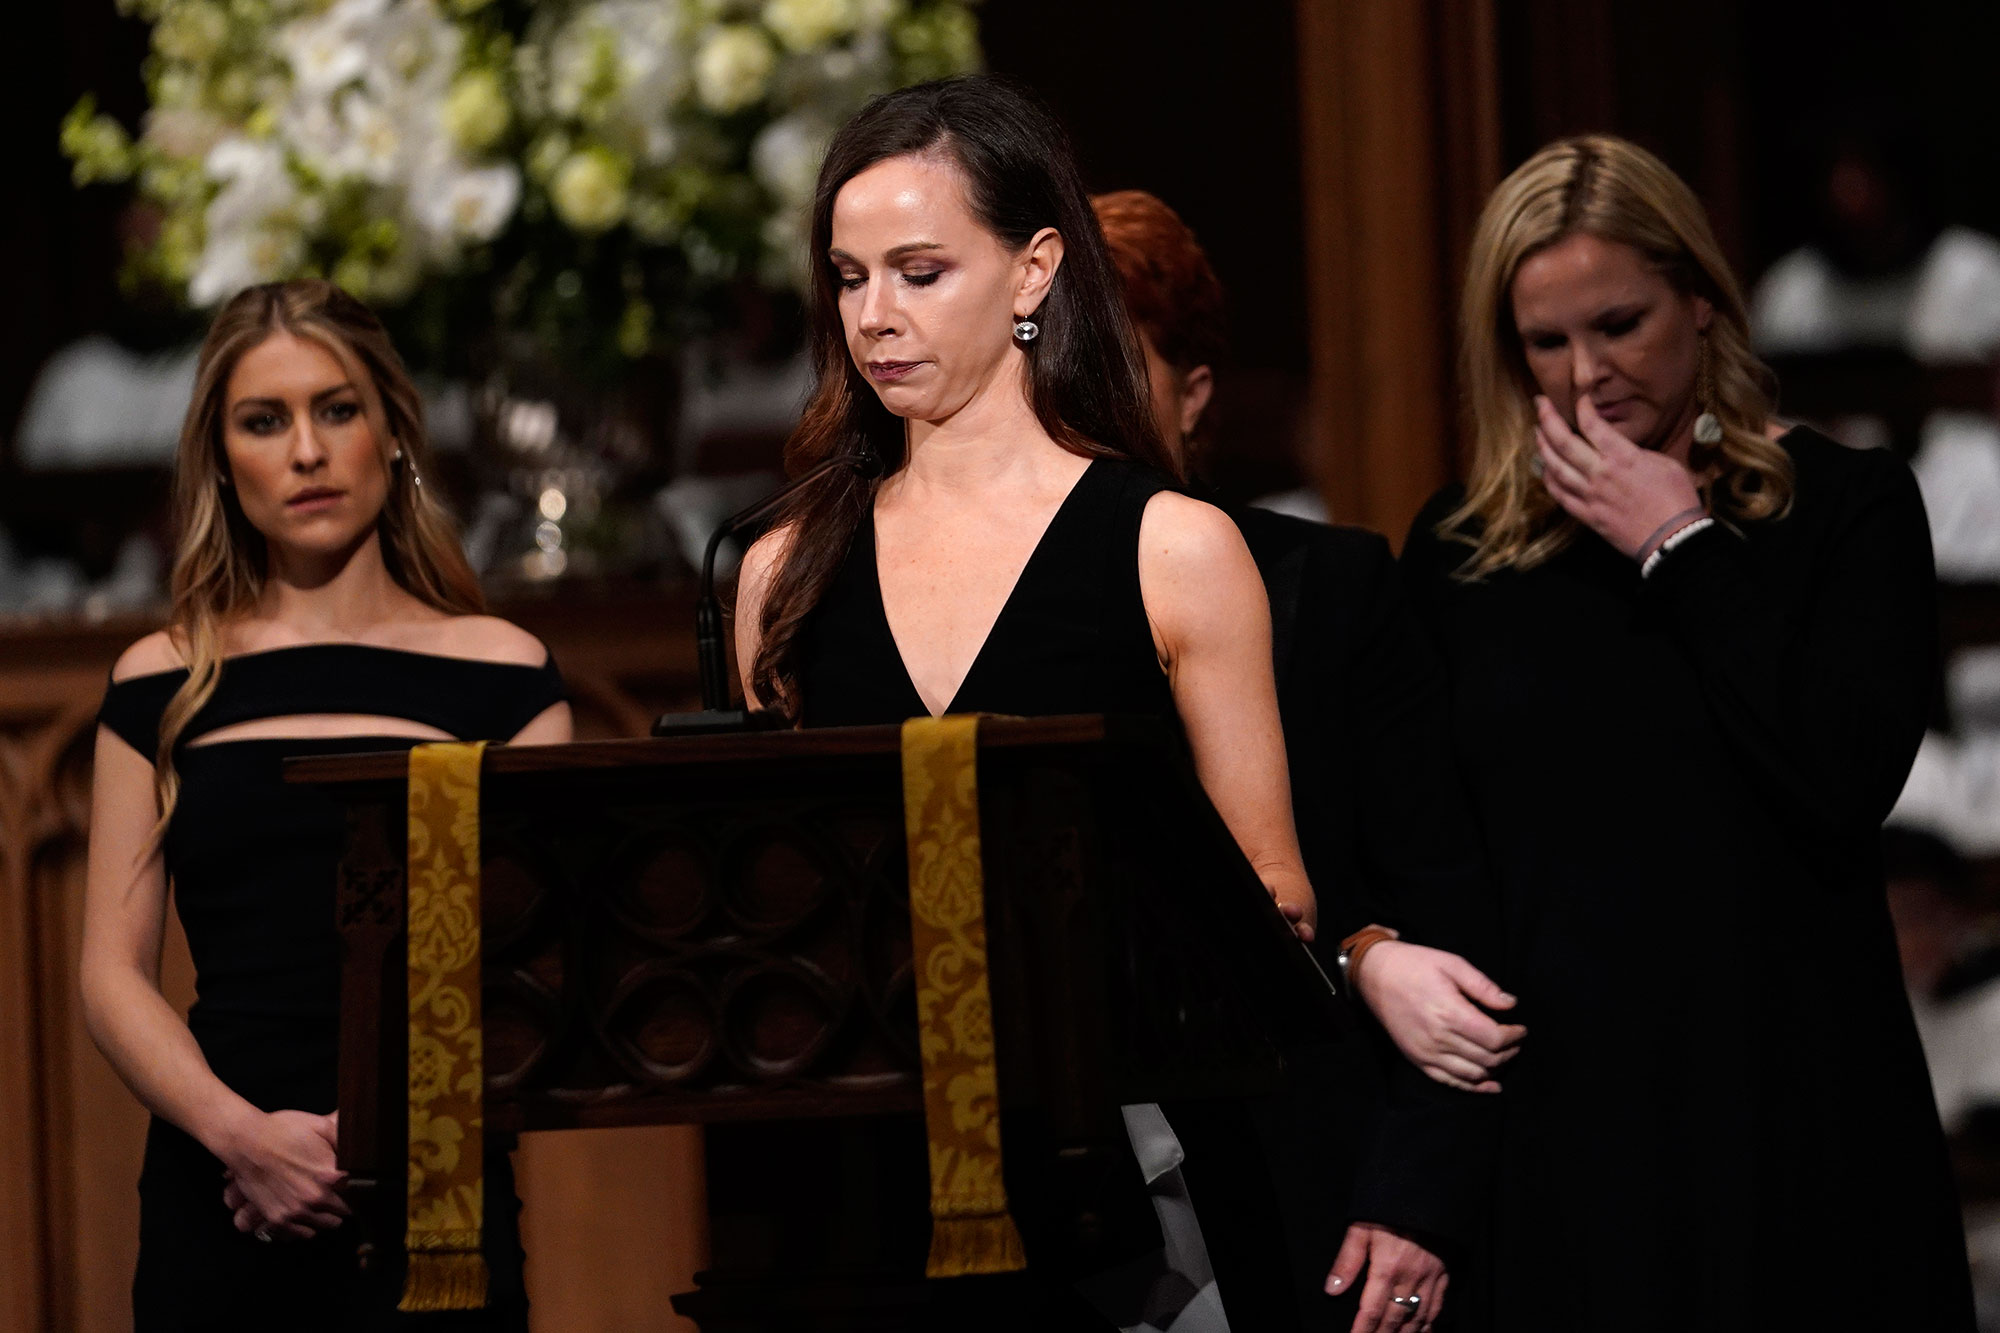 "<div class=""meta image-caption""><div class=""origin-logo origin-image none""><span>none</span></div><span class=""caption-text"">Granddaughter Barbara Pierce Bush reads scripture during a funeral service for former President George H.W. Bush at St. Martins Episcopal Church on December 6, 2018 in Houston. (David J. Phillip-Pool/Getty Images)</span></div>"